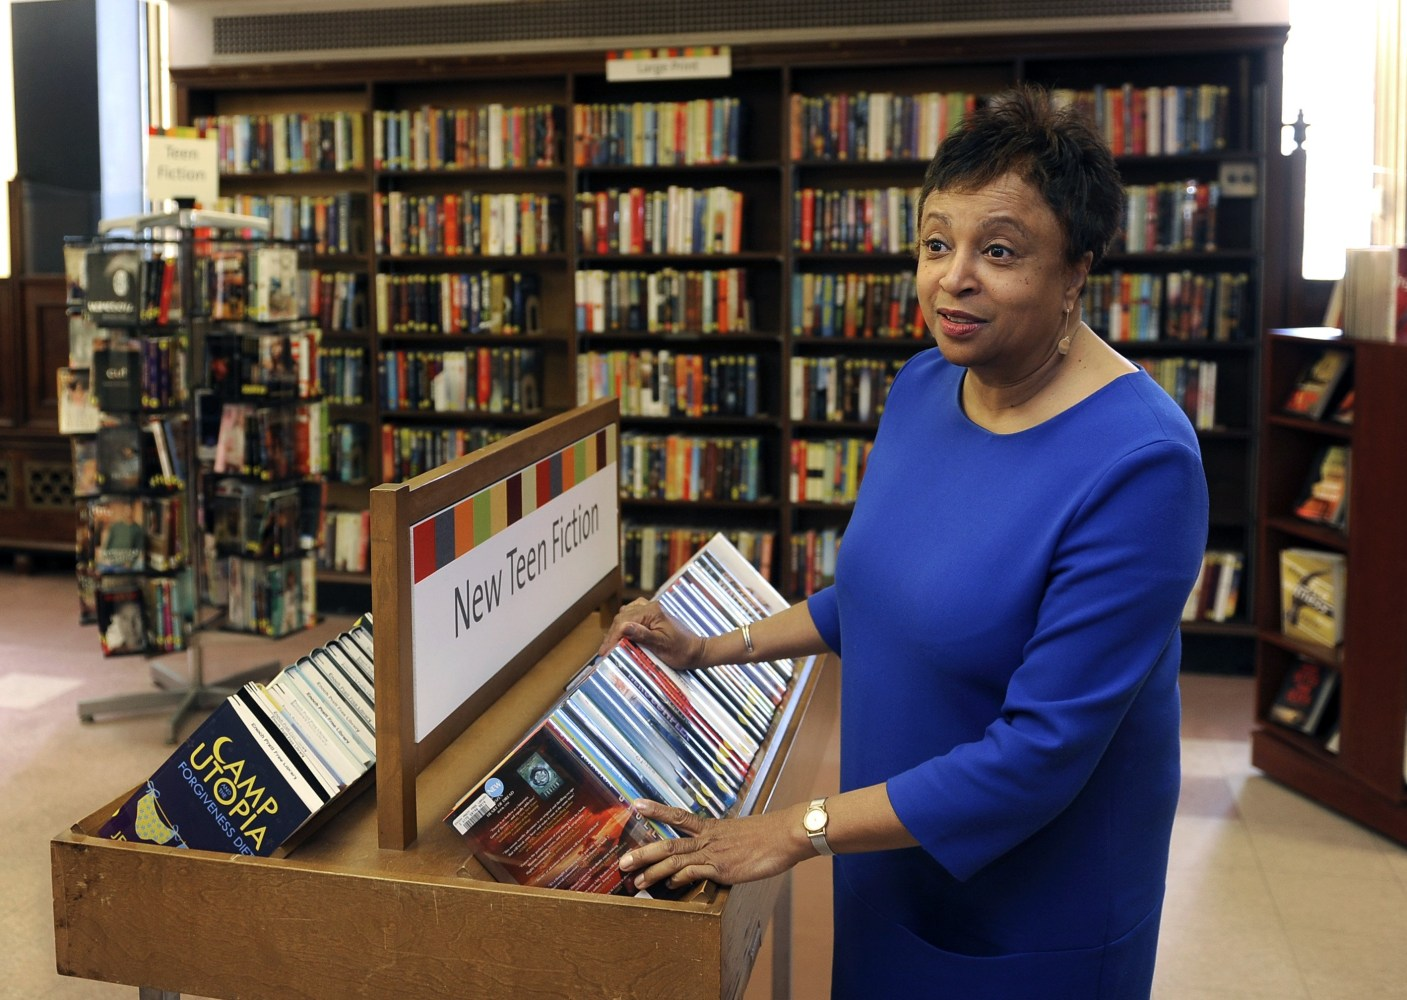 baltimores chief librarian could head library of congress nbc news. Resume Example. Resume CV Cover Letter